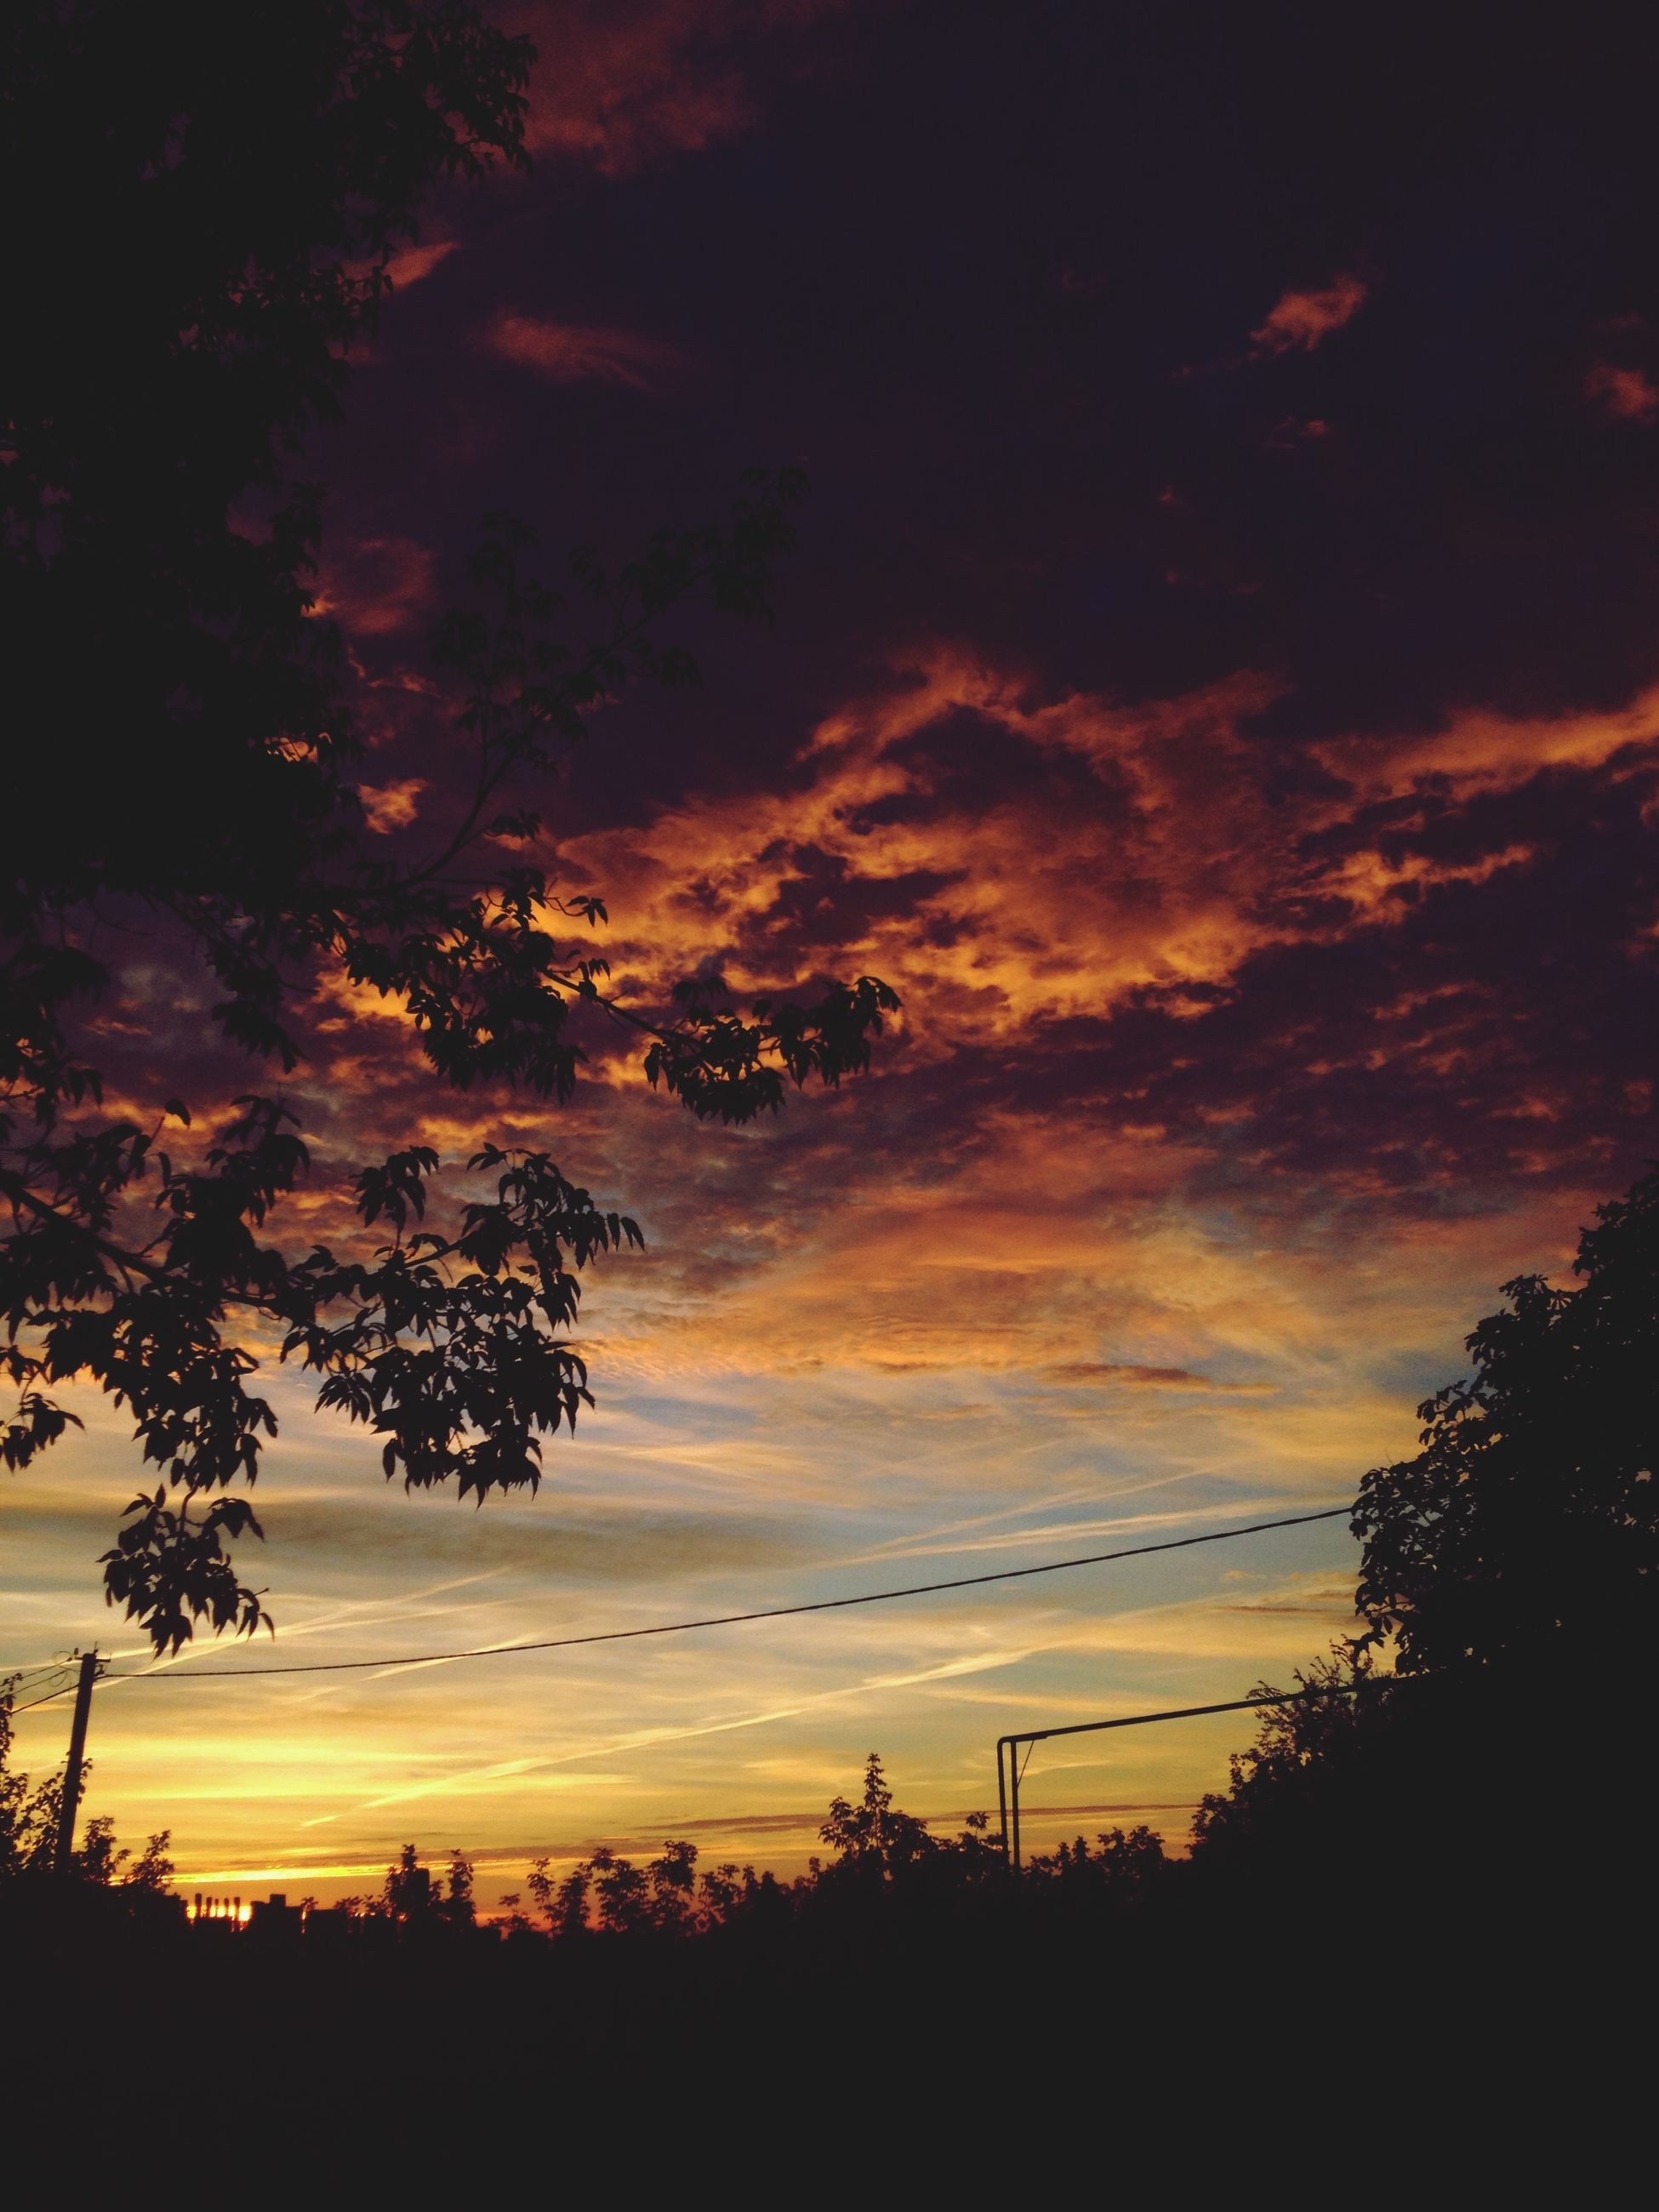 sunset, sky, cloud - sky, silhouette, beauty in nature, tree, plant, scenics - nature, tranquility, nature, no people, orange color, tranquil scene, outdoors, growth, low angle view, idyllic, non-urban scene, dramatic sky, branch